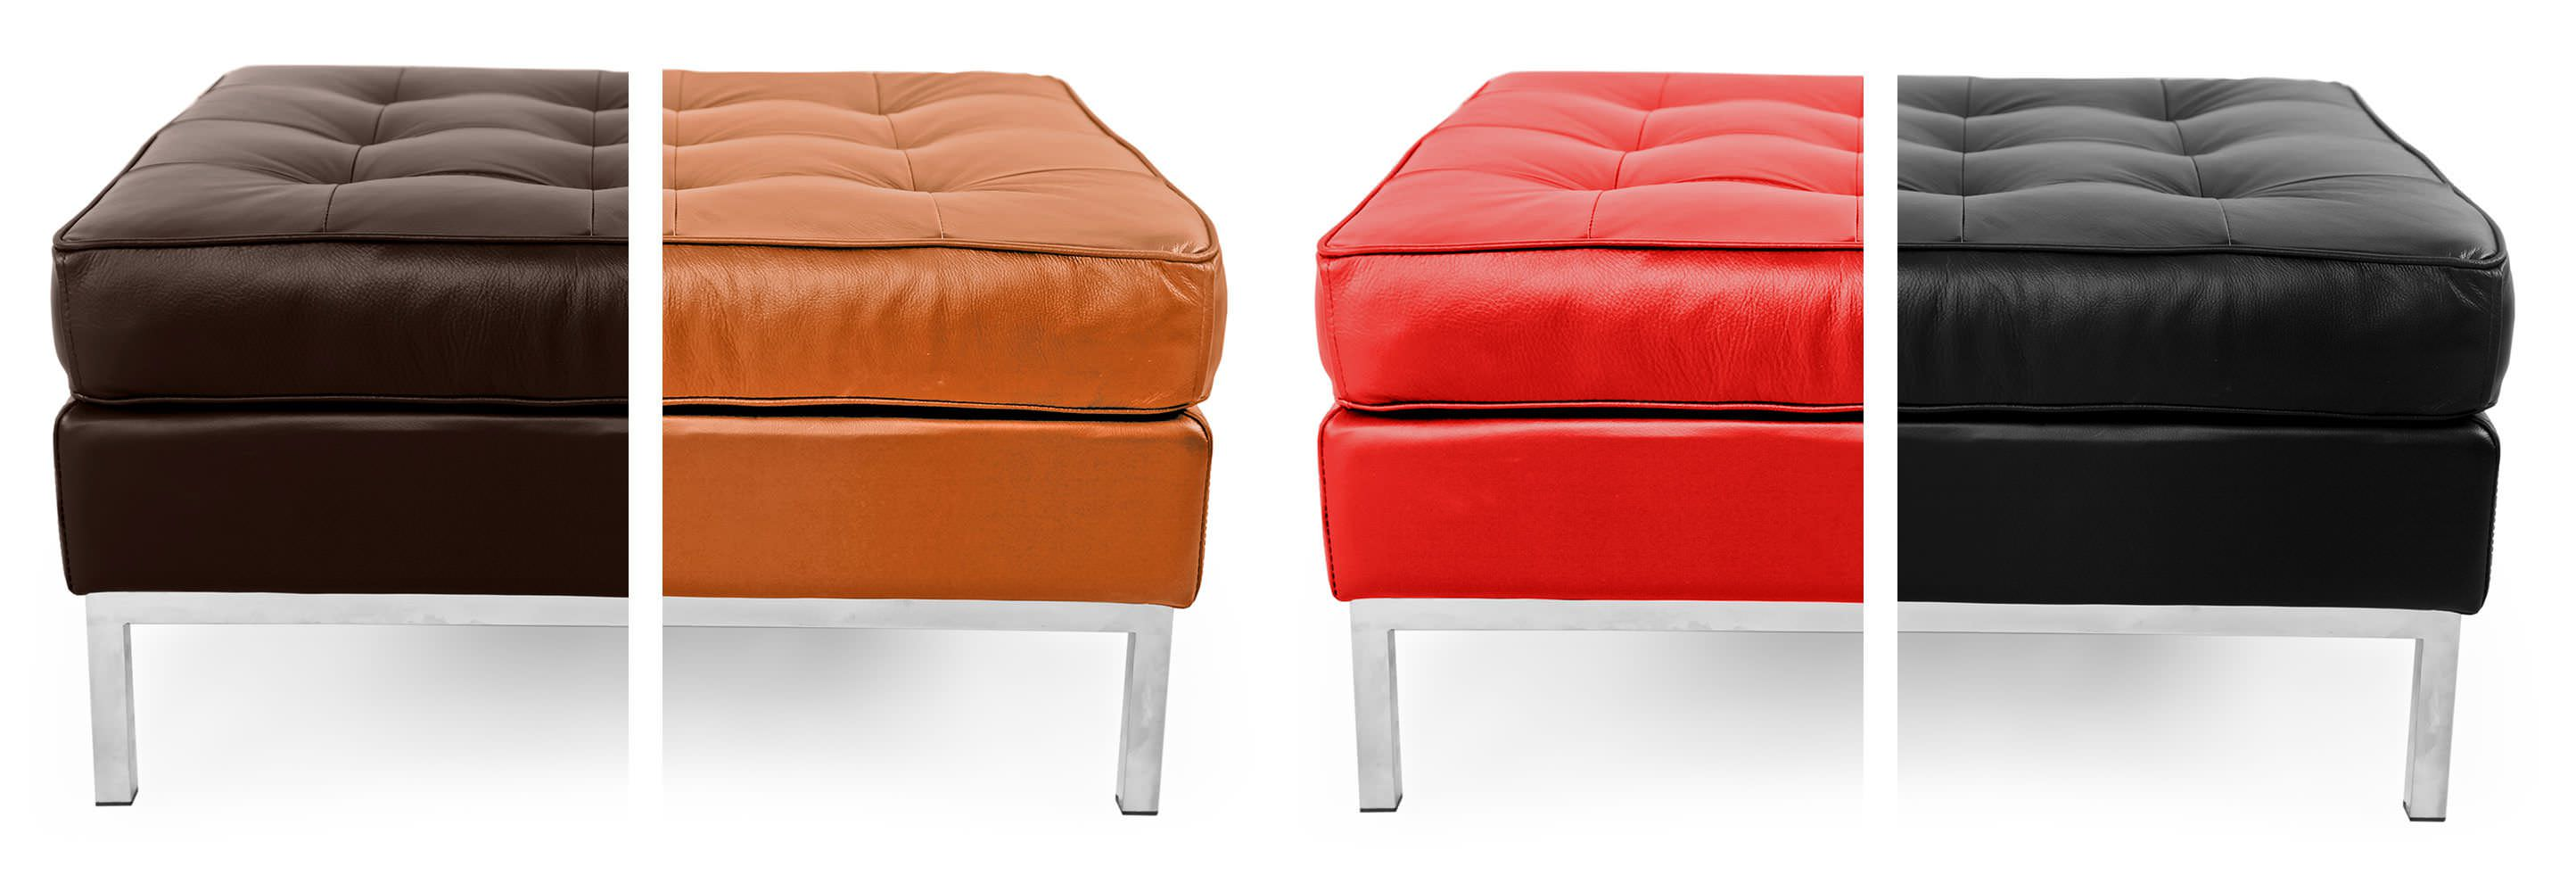 Florence knoll style ottoman footstool